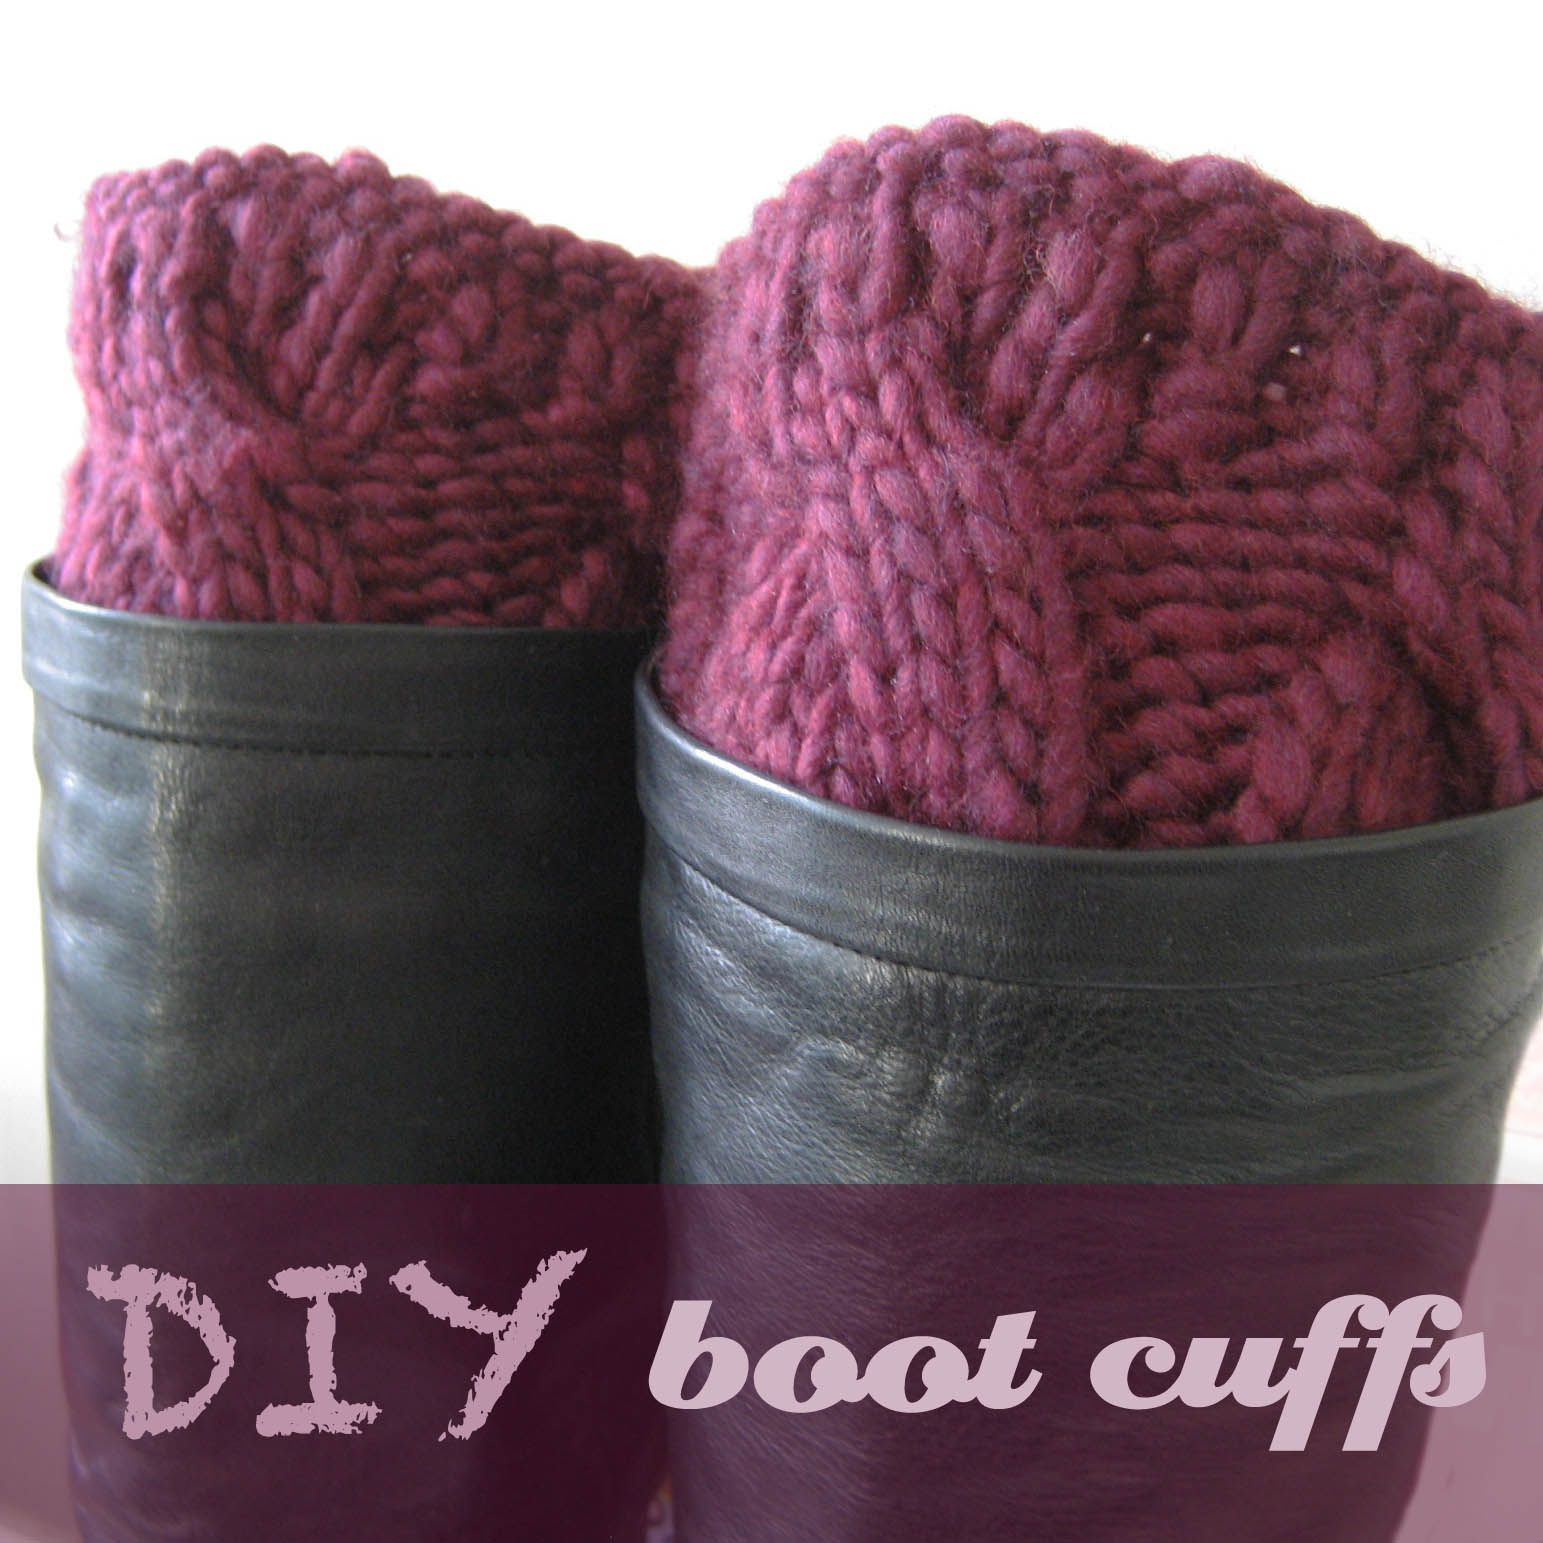 owlswakeup: DIY Knitted Boot Cuffs; I used size 9 needles ...